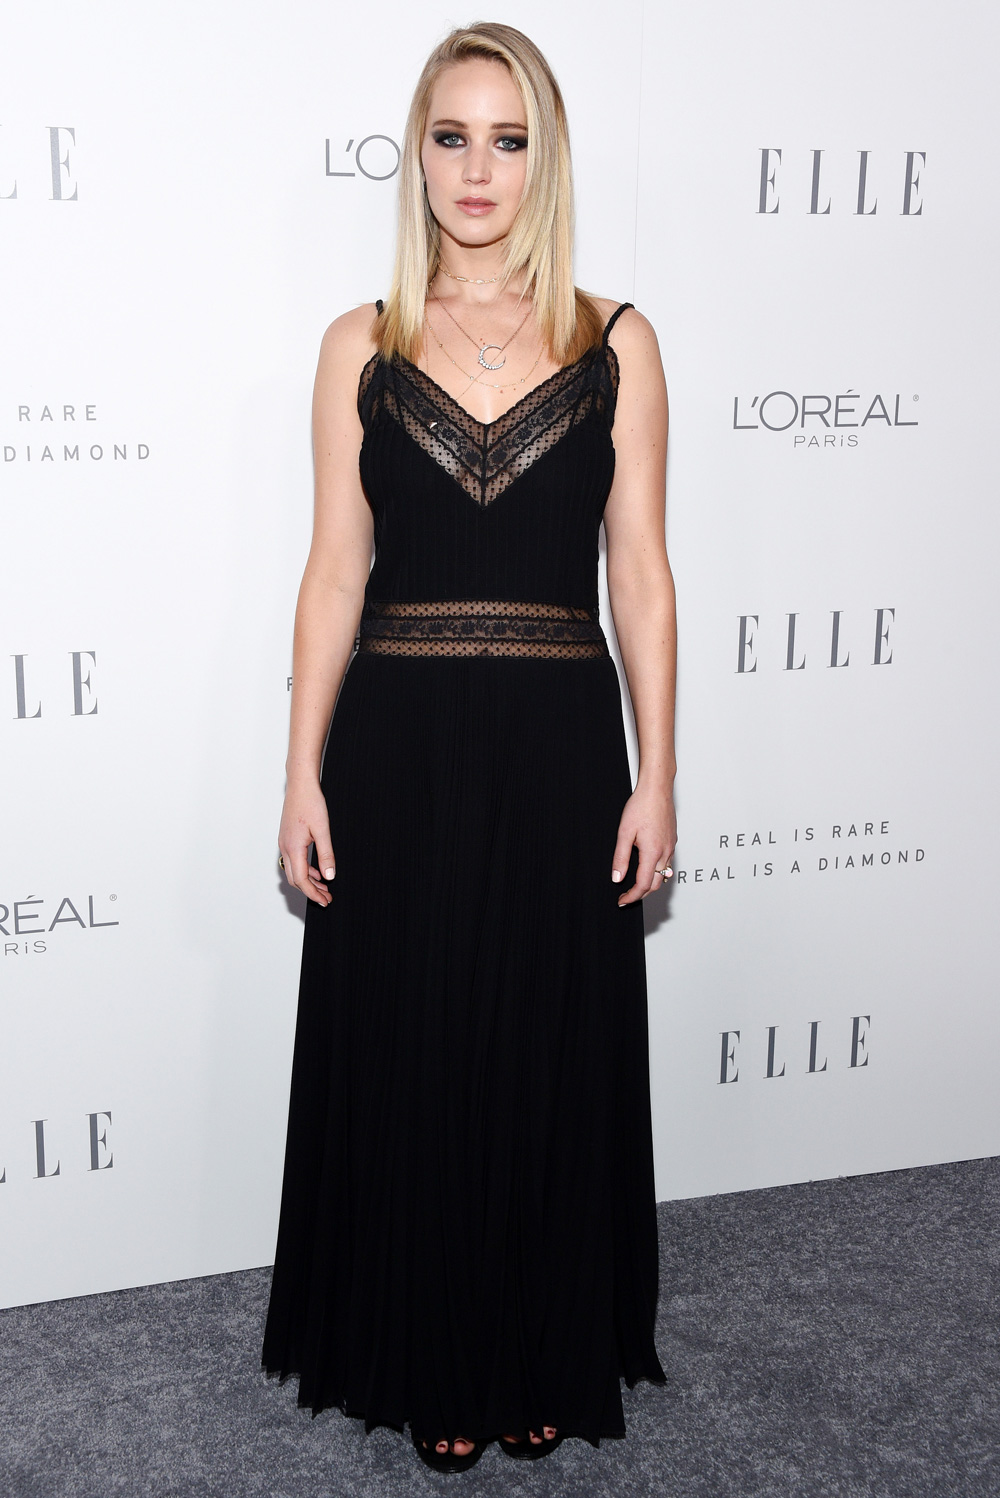 Jennifer Lawrence In Black Lace Dress By Dior About Her